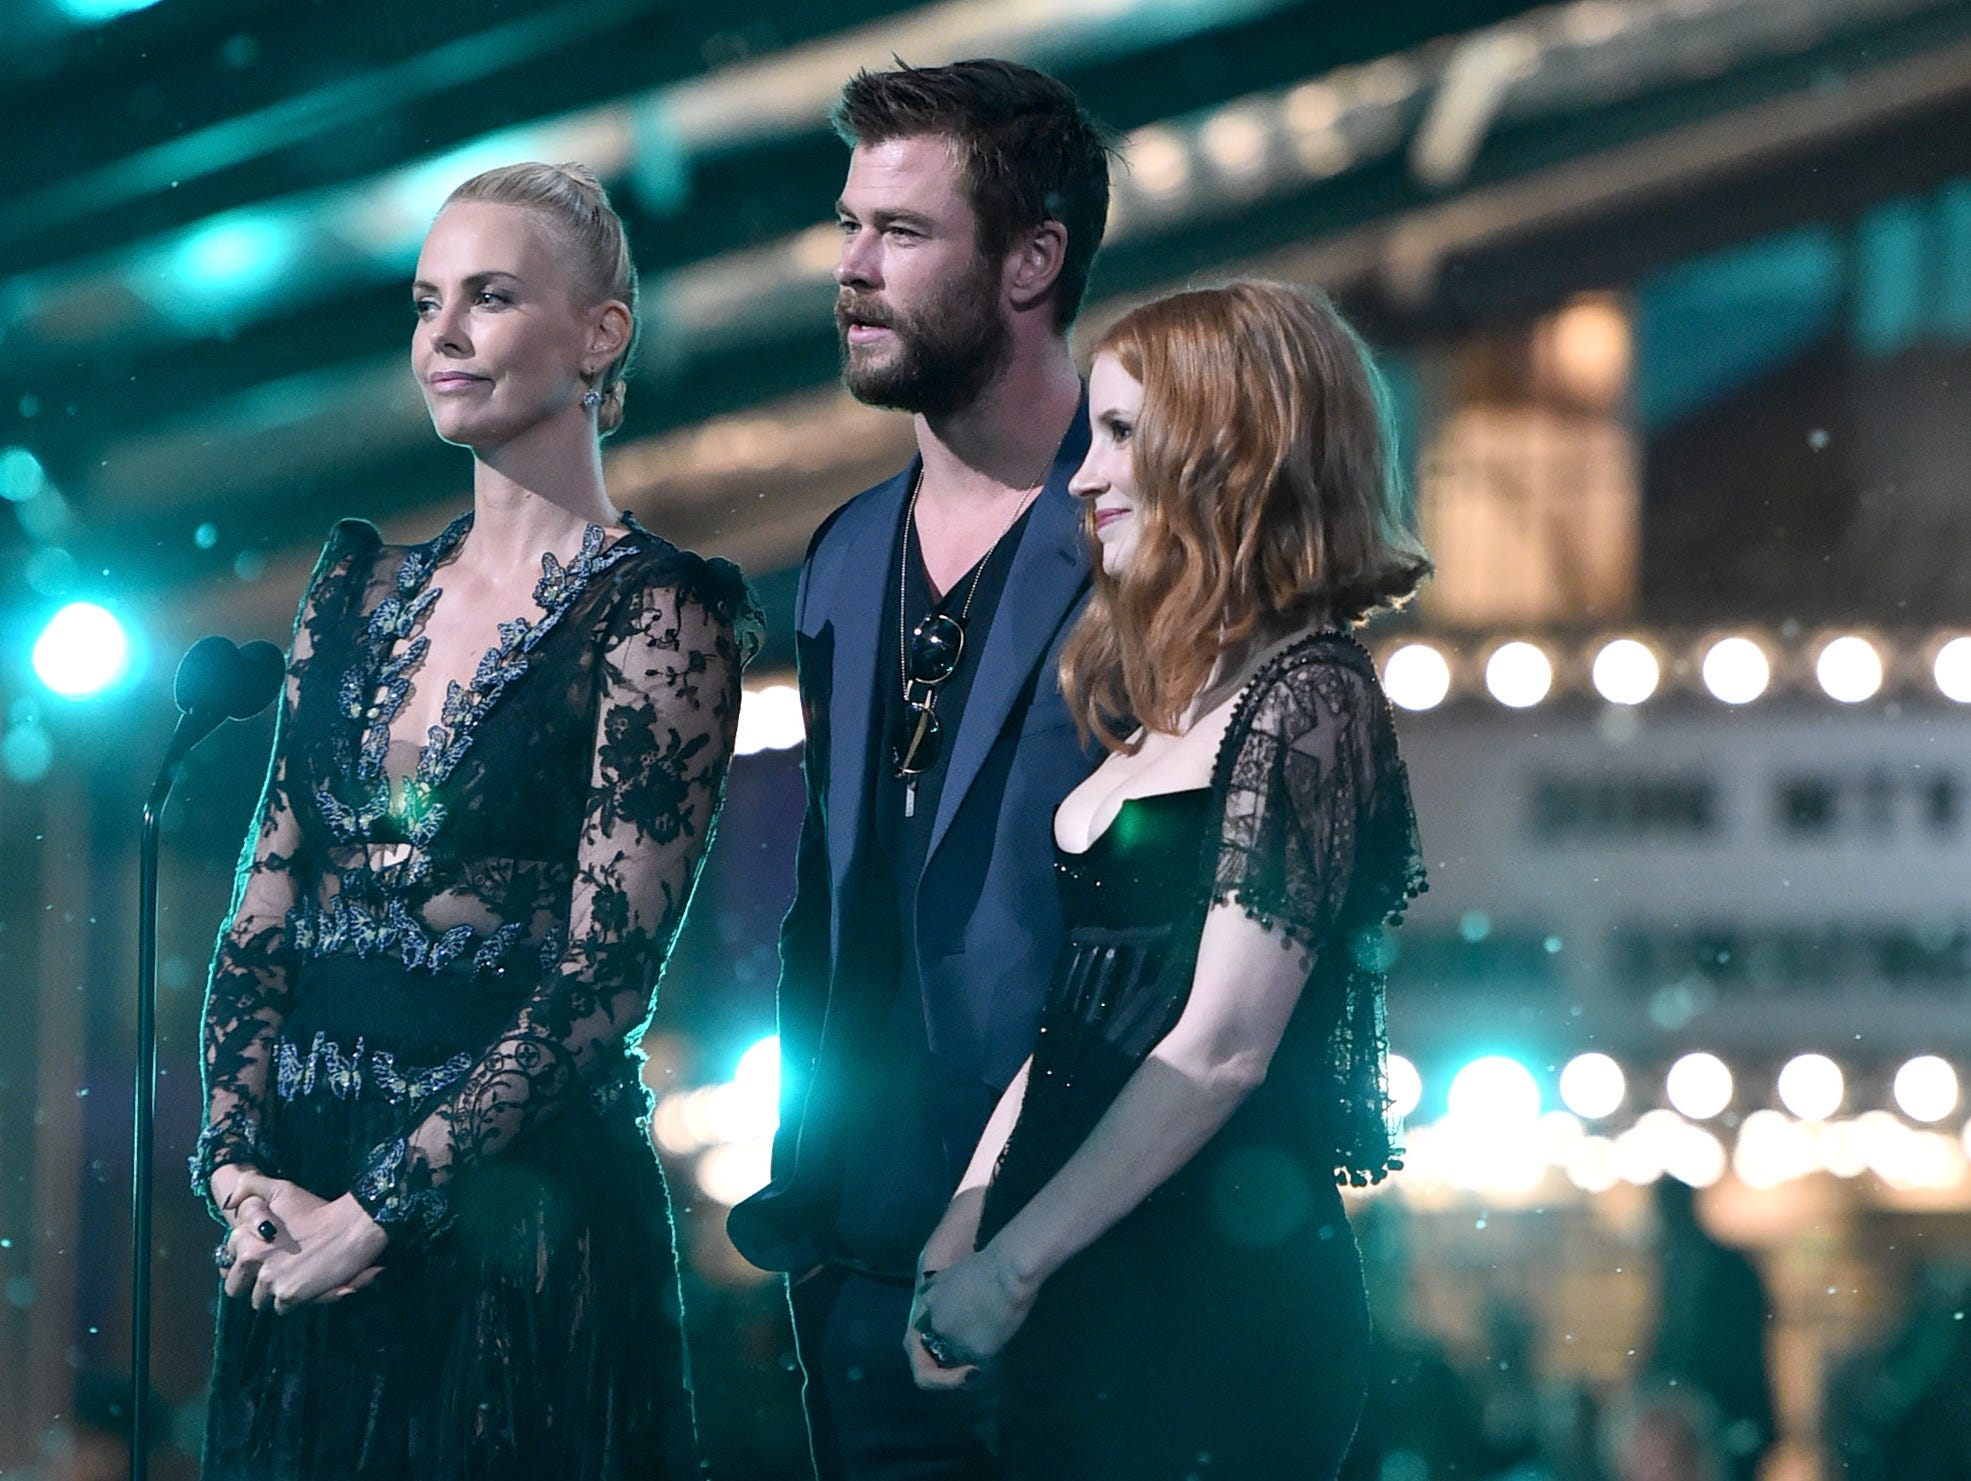 BURBANK, CALIFORNIA - APRIL 09:  (L-R) Actors Charlize Theron, Chris Hemsworth and Jessica Chastain speak onstage during the 2016 MTV Movie Awards at Warner Bros. Studios on April 9, 2016 in Burbank, California.  MTV Movie Awards airs April 10, 2016 at 8pm ET/PT.  (Photo by Alberto E. Rodriguez/Getty Images for MTV) ORG XMIT: 627631543 ORIG FILE ID: 520352336